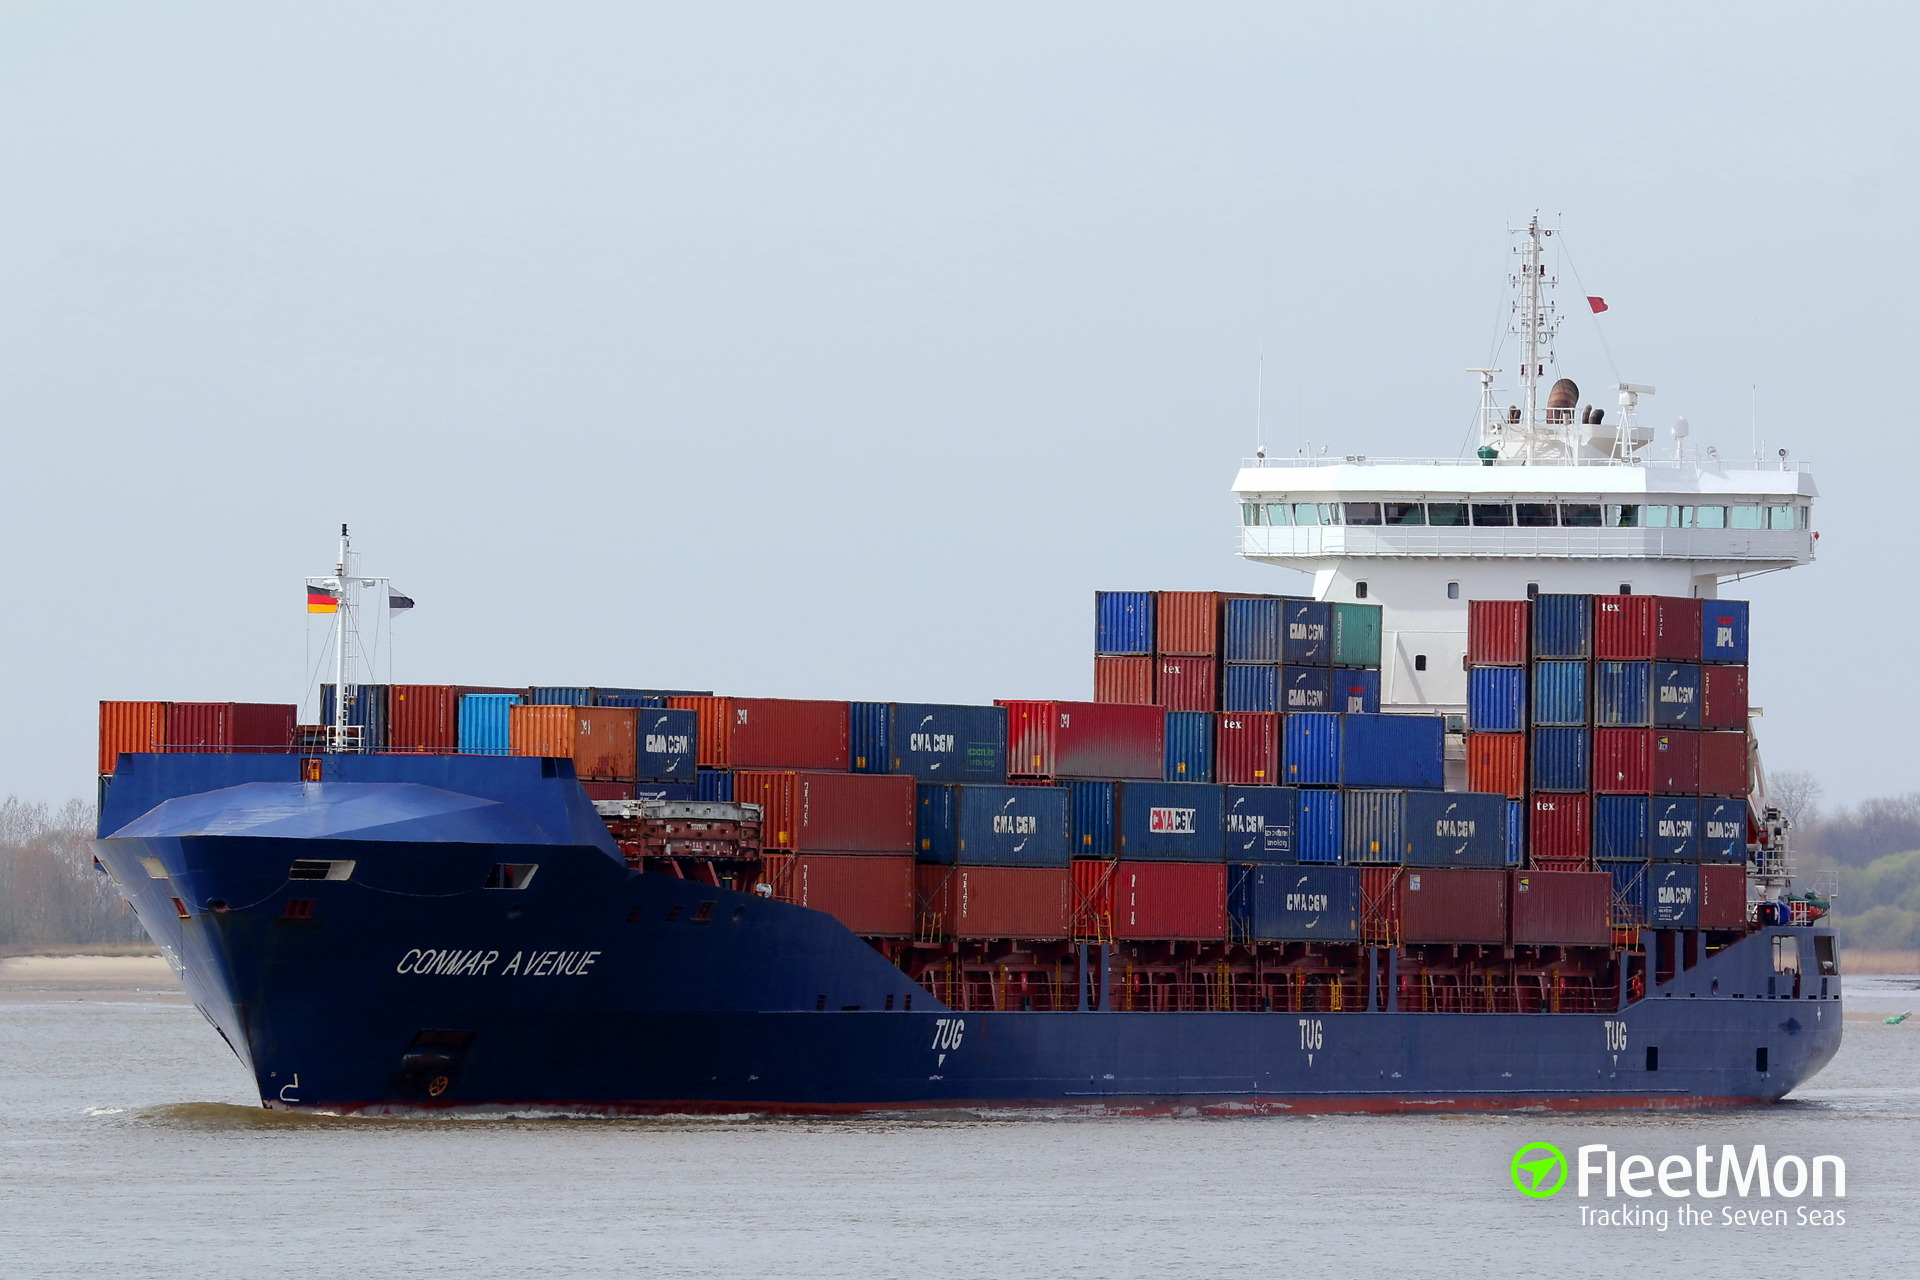 Container ship CONMAR AVENUE troubled in Kiel Canal